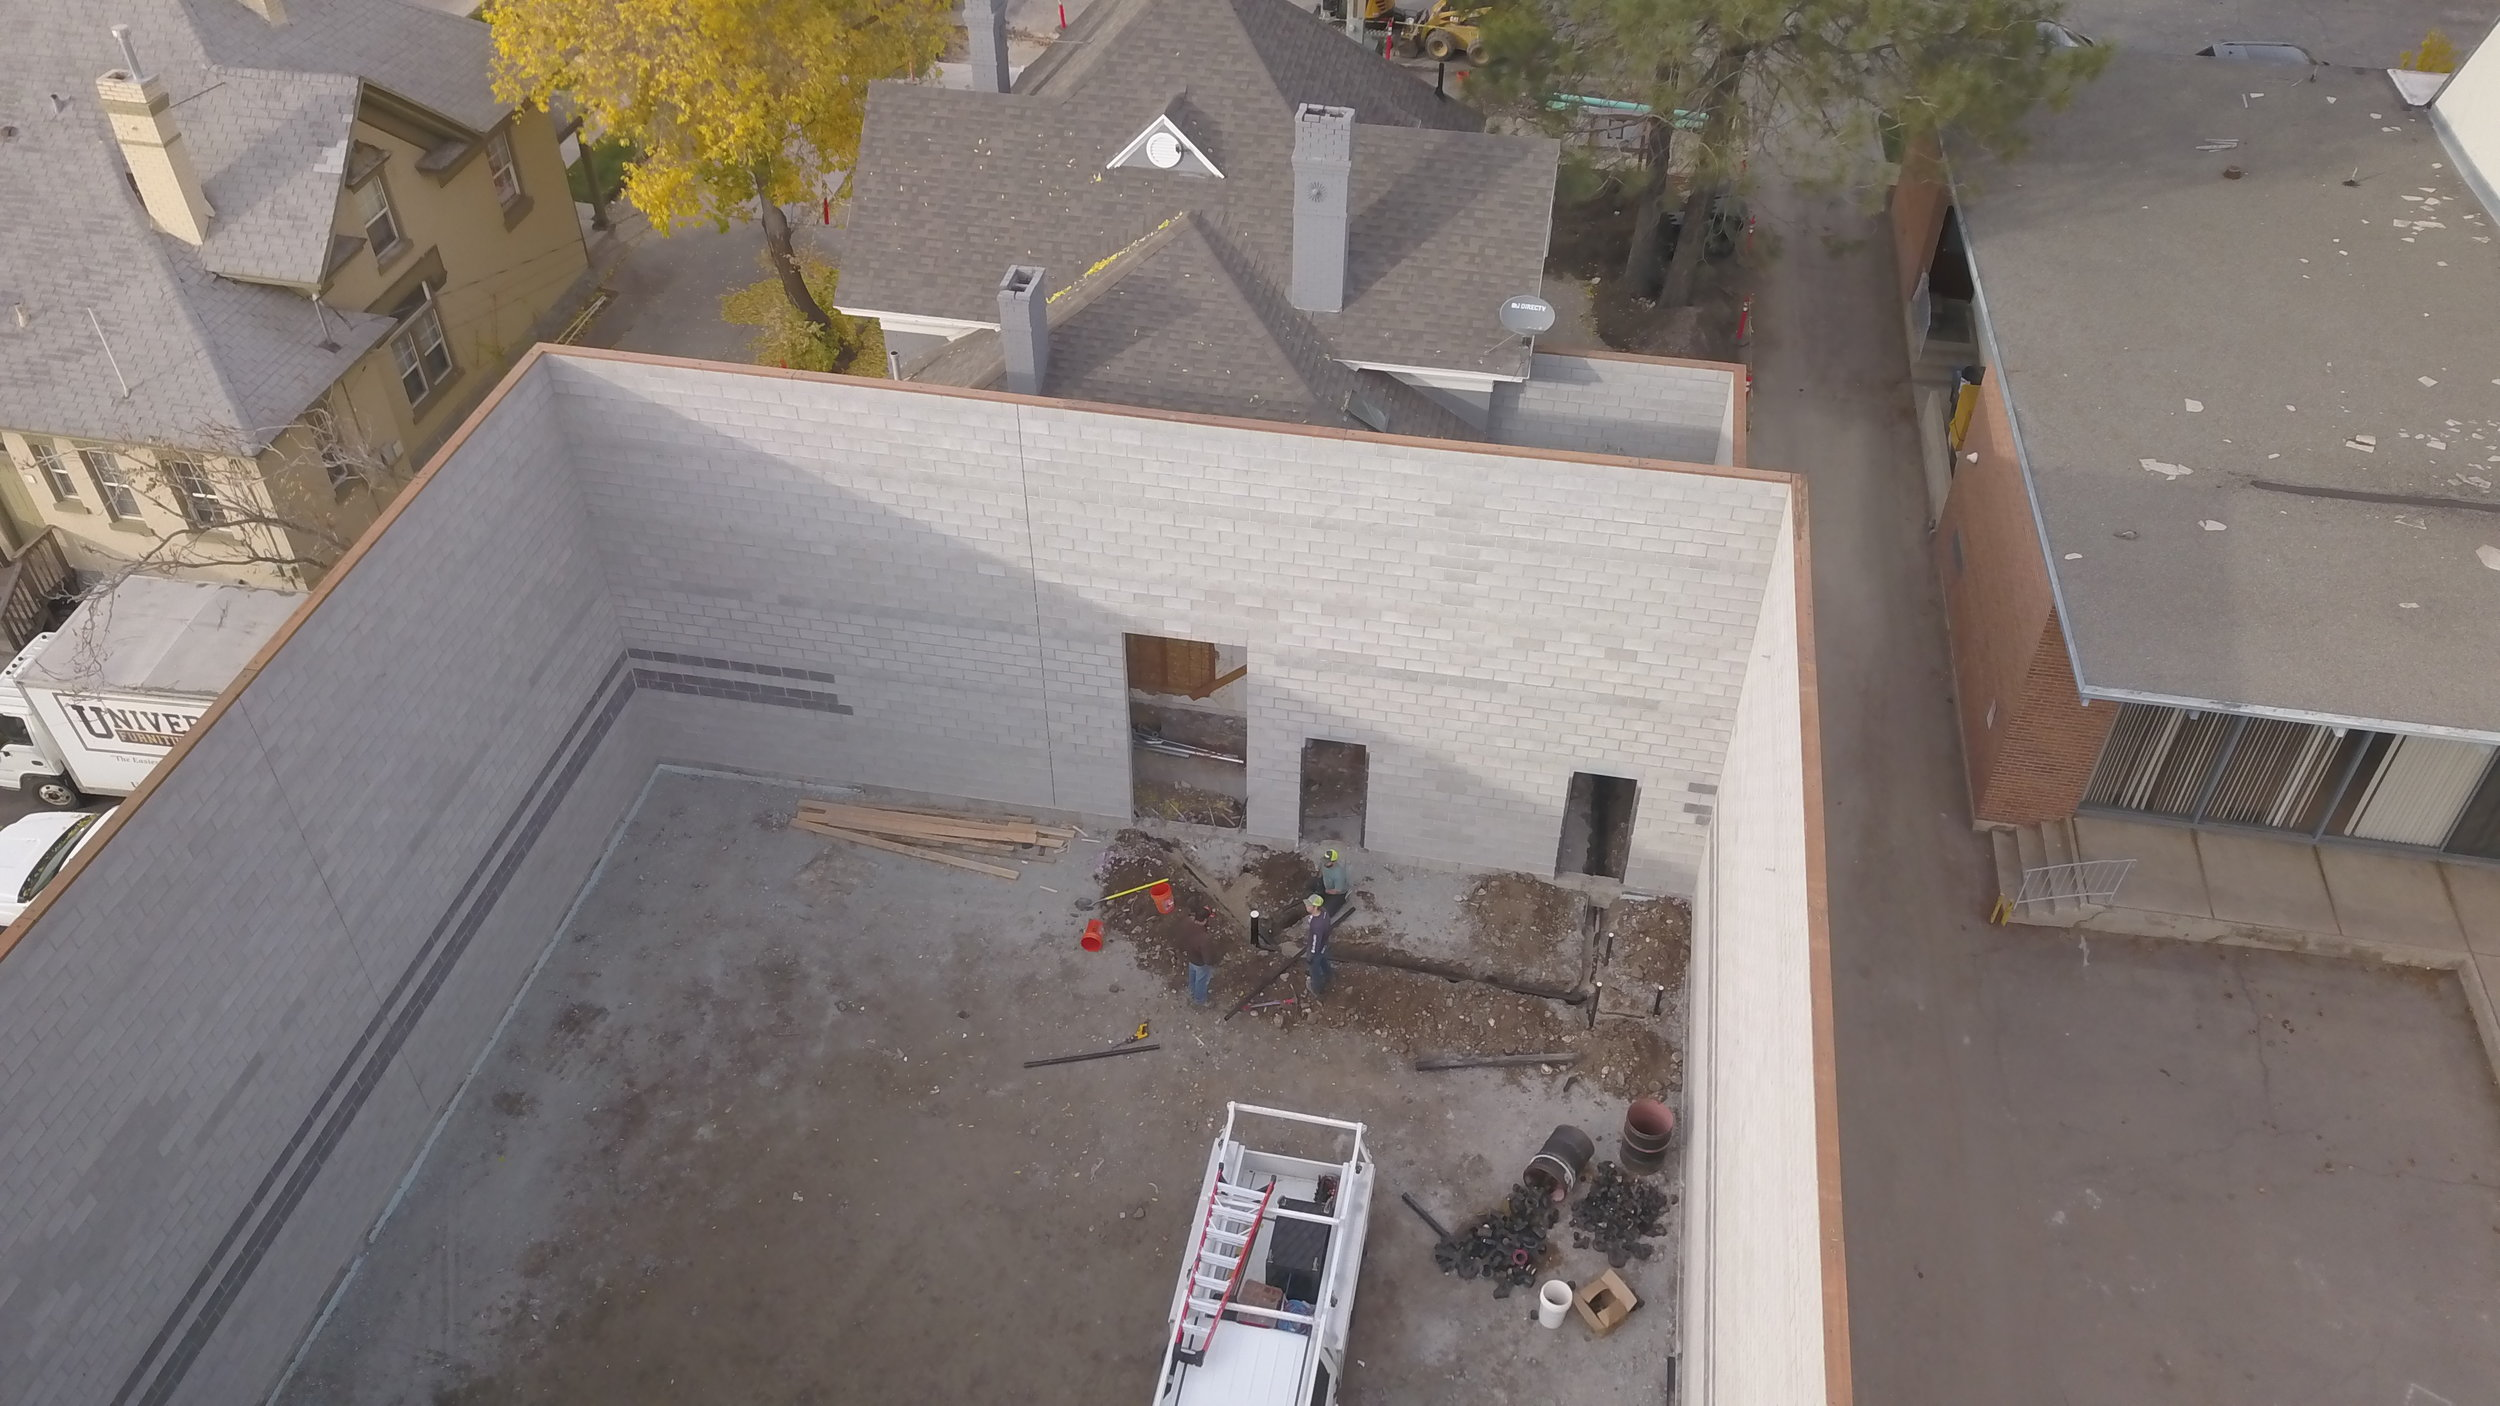 Plumbers getting the drain lines installed, door on the right is lobby into the janitor closet, door on the left is lobby into the bathroom. the large opening is lobby into the hallway which will run between studios.